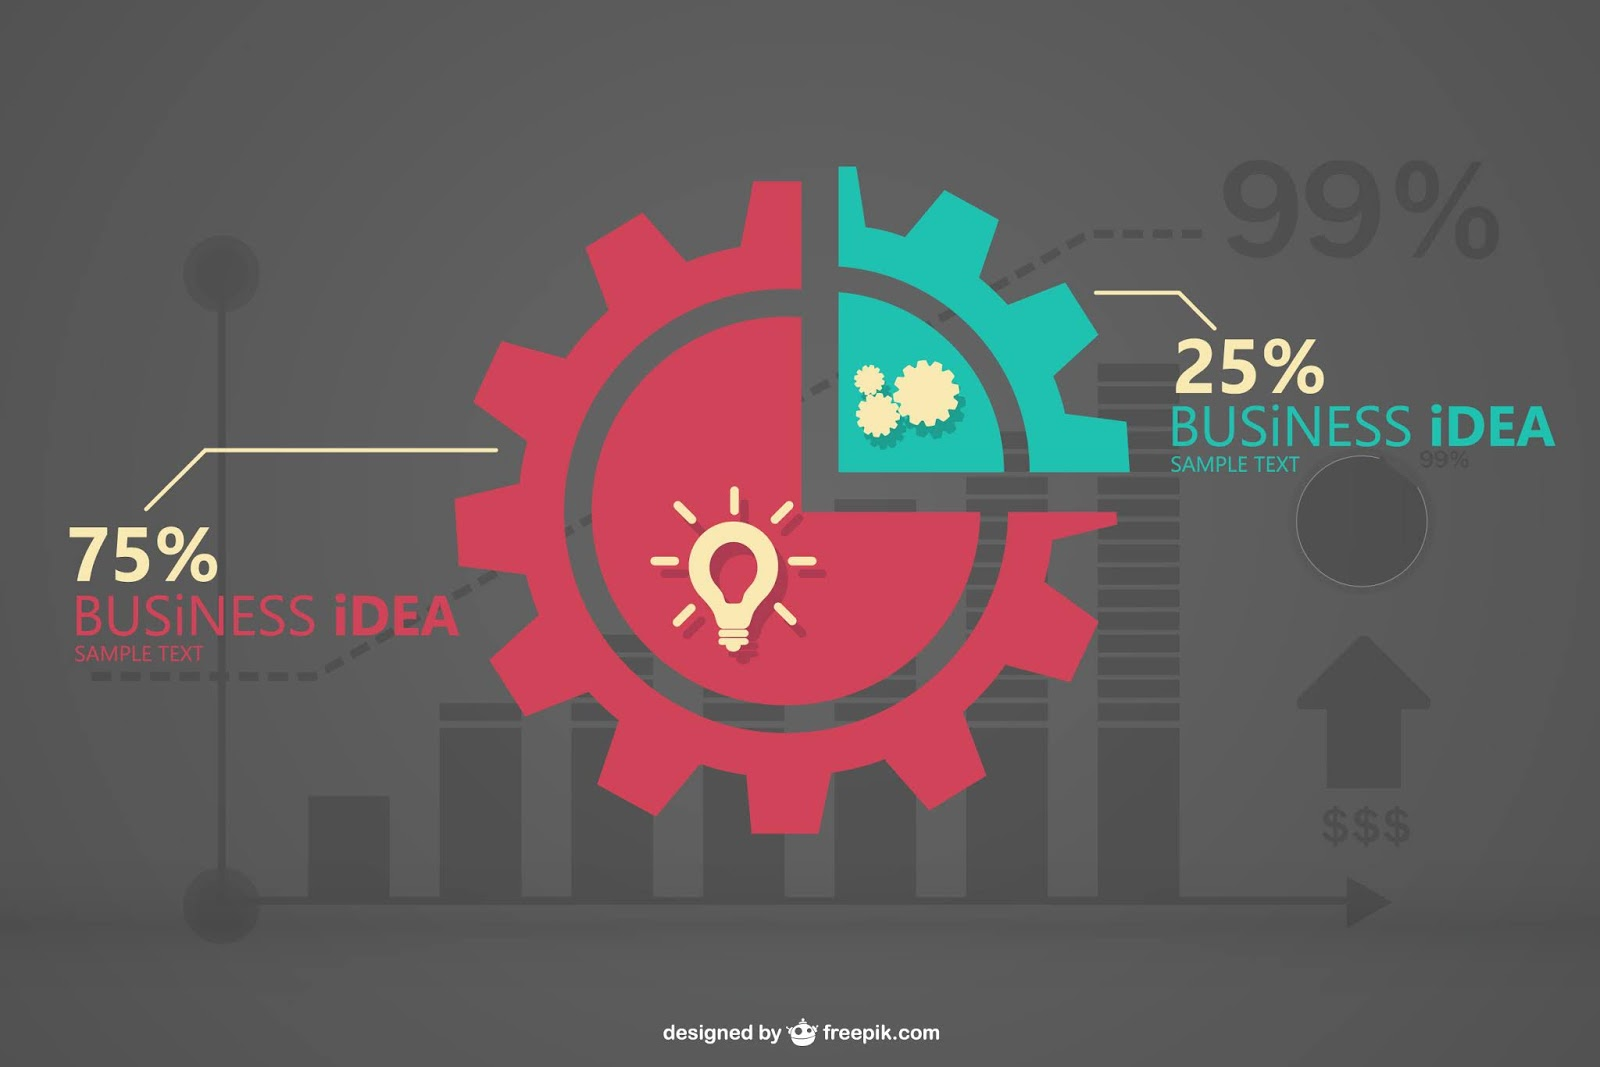 Business Infographic Vector	 Free Download Vector CDR, AI, EPS and PNG Formats